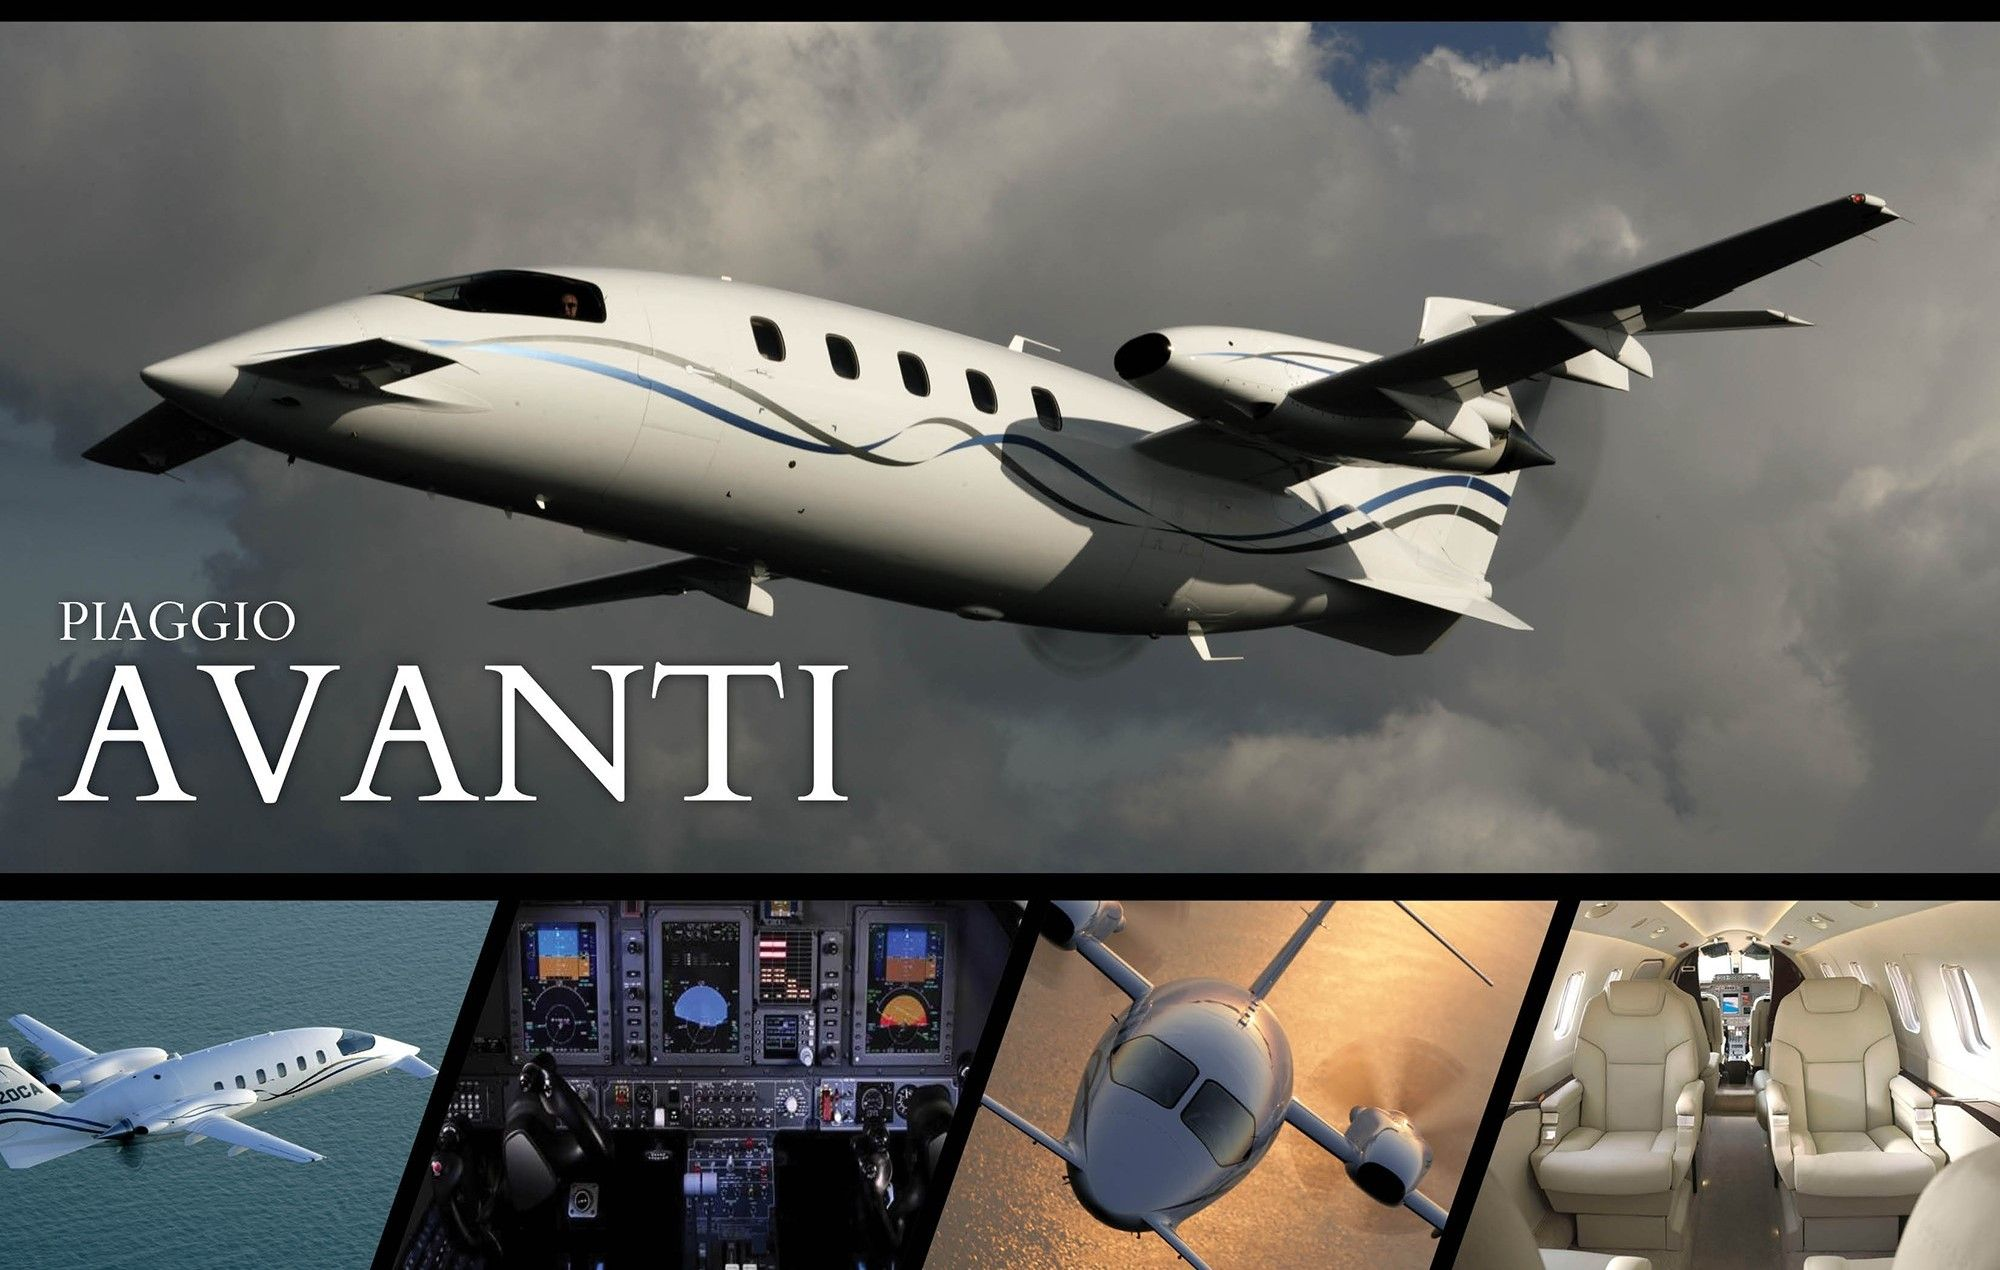 Hands Down the greatest turboprop in the world. With